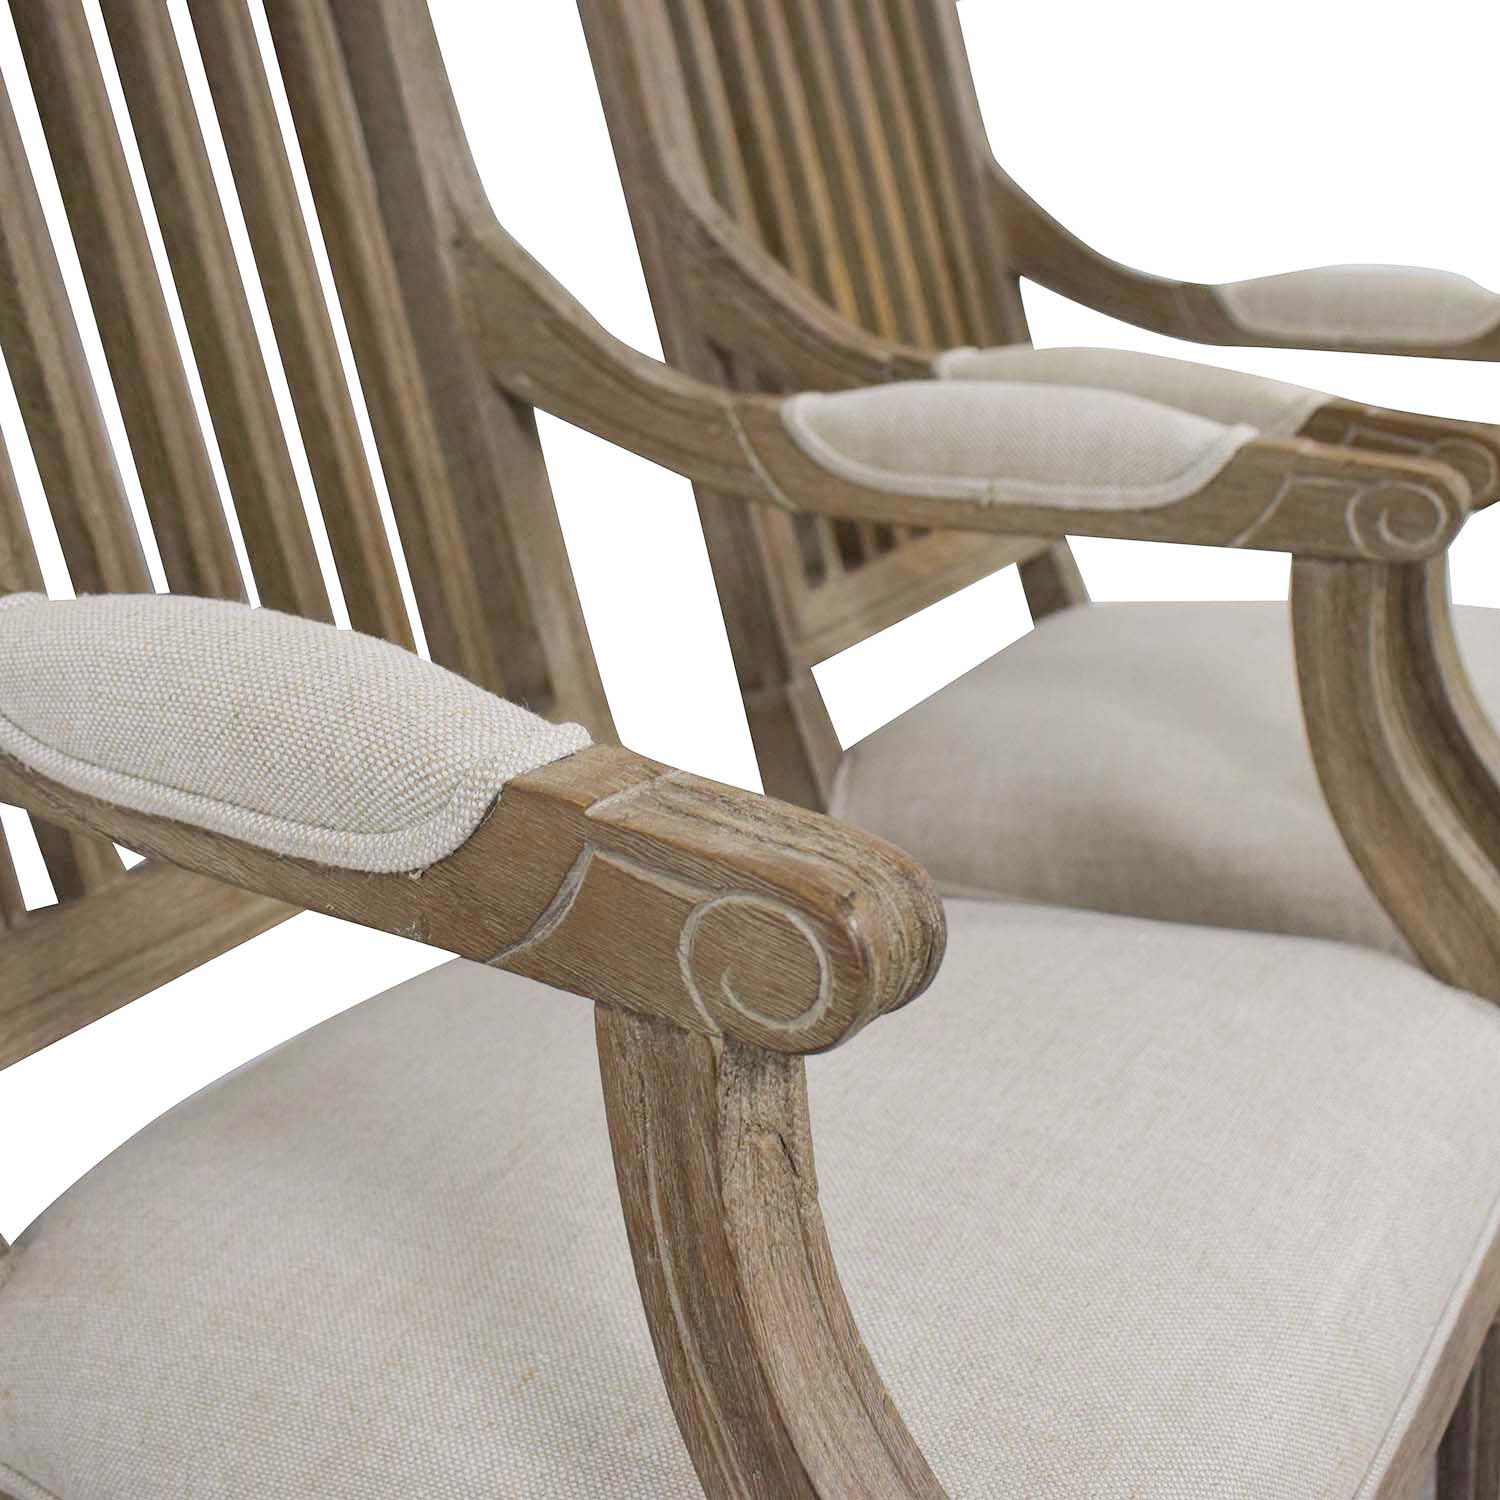 Restoration Hardware Restoration Hardware Spindle Back Dining Chairs second hand